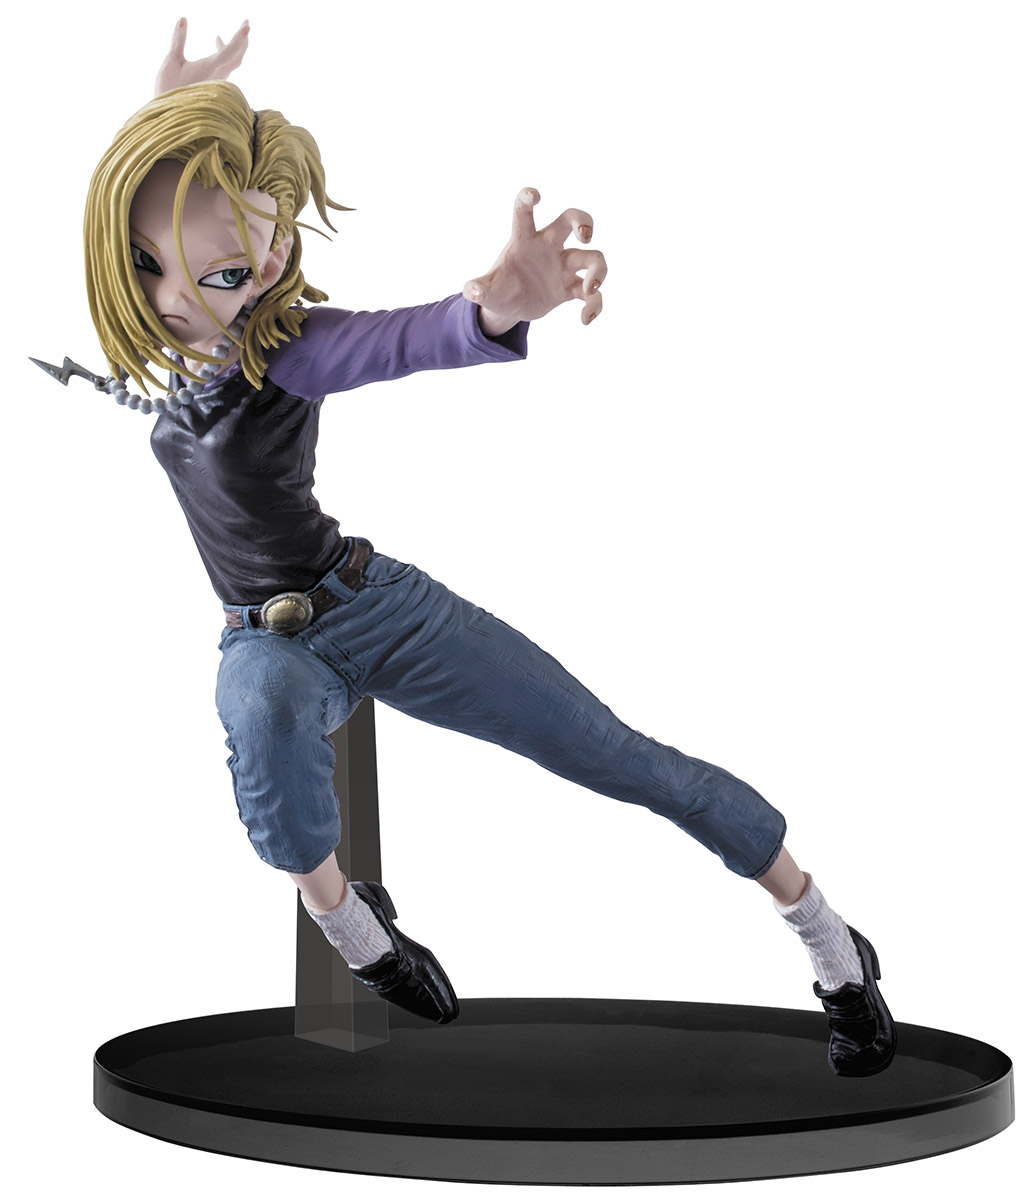 Bandai Фигурка Dragon Ball Z Colosseum SCultures Big Budoukai 6 Vol.3 Android 18 100% original banpresto big zoukei tenkaichi budoukai 3 vol 4 collection figure son goku from dragon ball